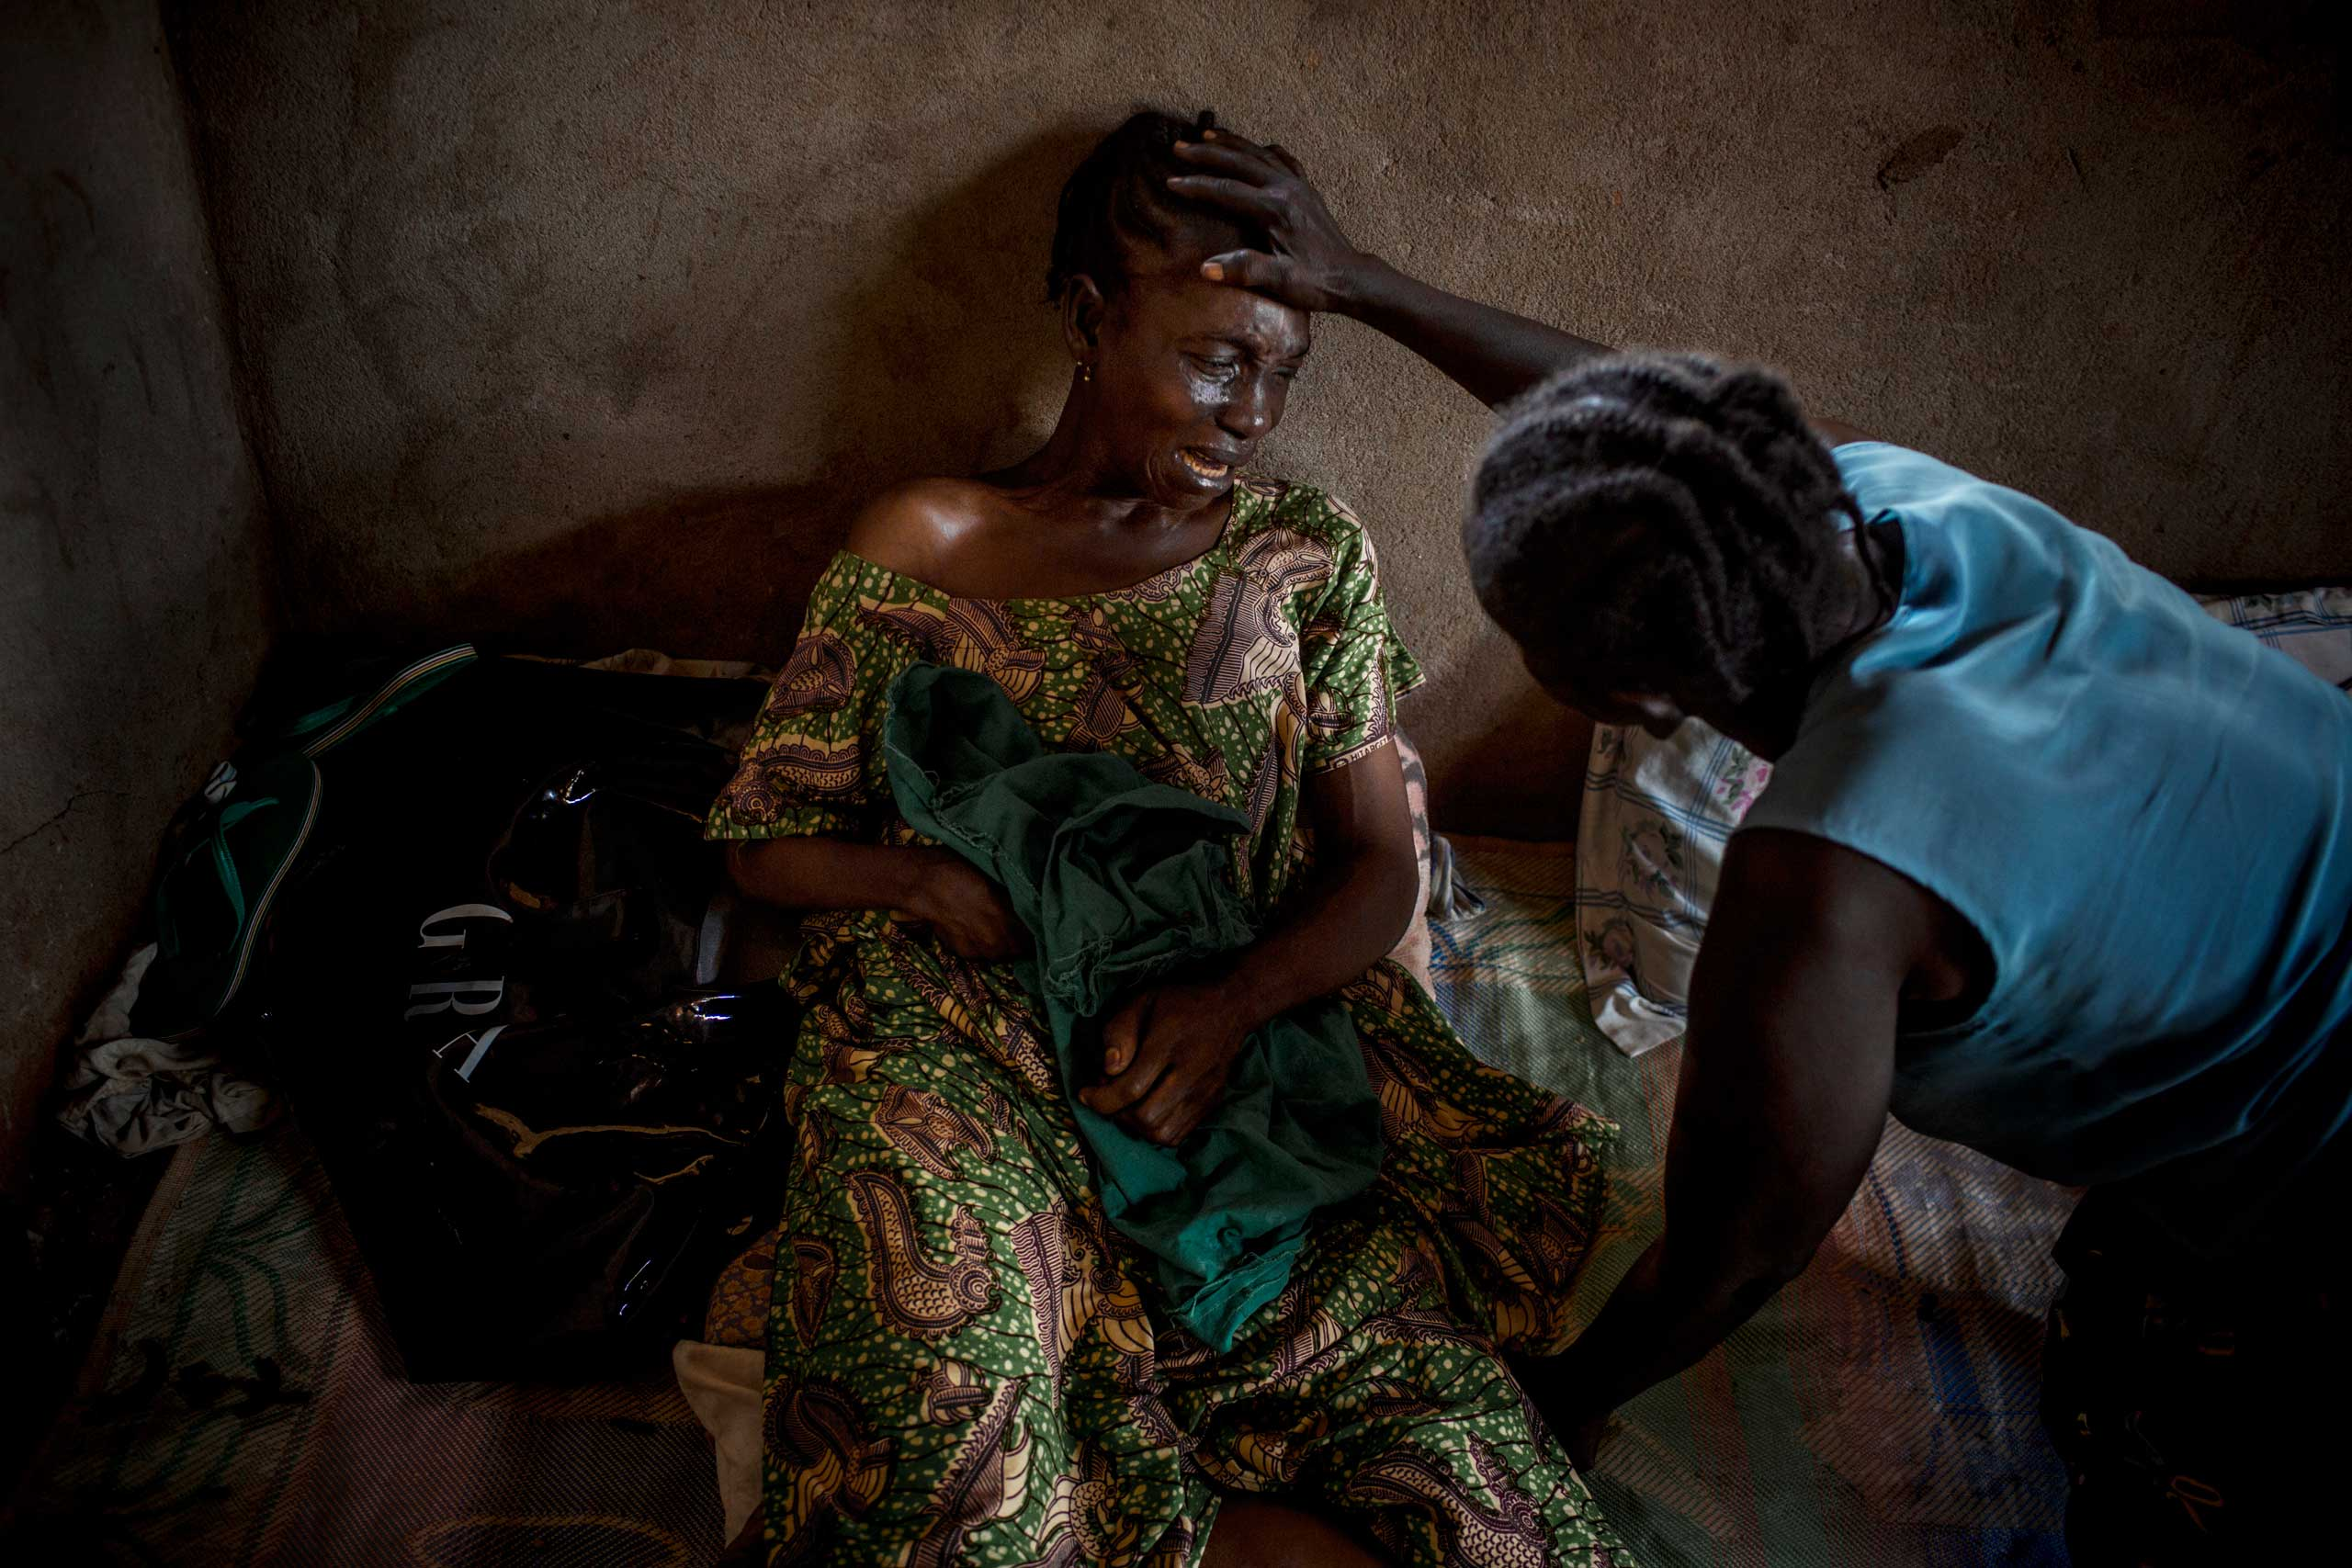 A woman cries after the death of her 23-year-old daughter, who  was said to be killed by a grenade launched in her courtyard by a member of Séléka. Bangui, Central African Republic. Nov. 14, 2013.